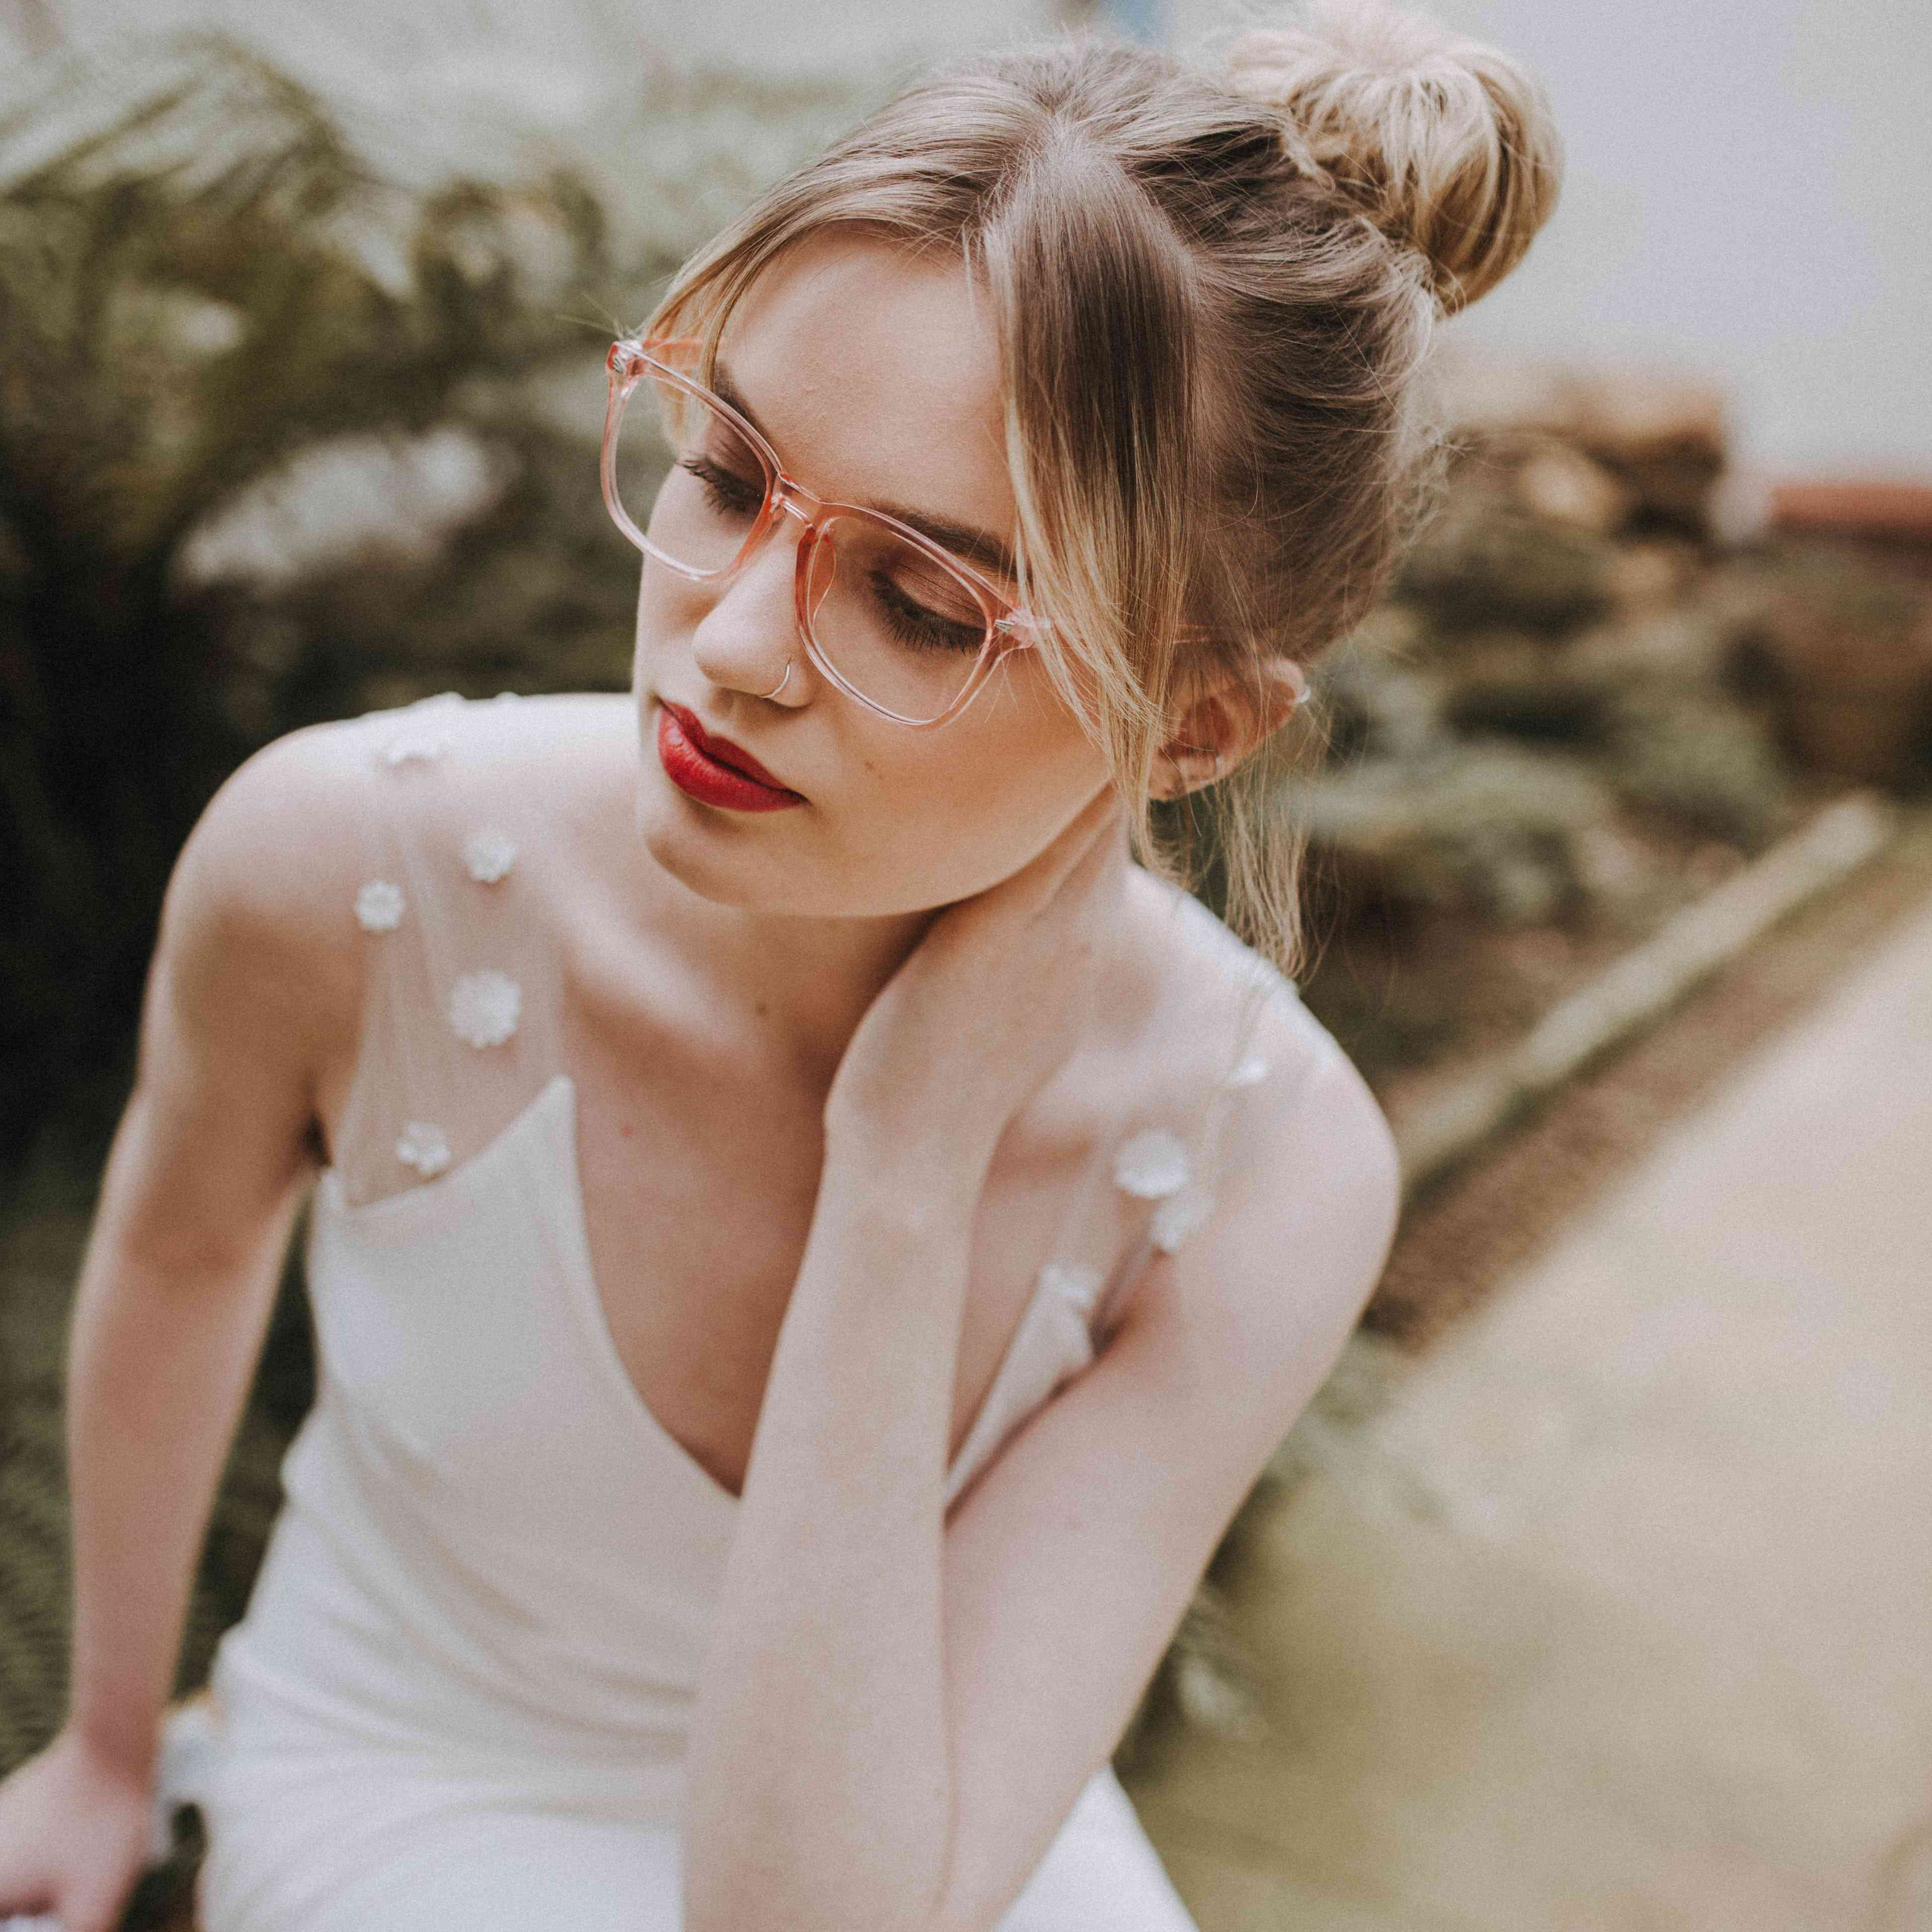 Bride in white gown with her hair in a bun wearing glasses and red lipstick